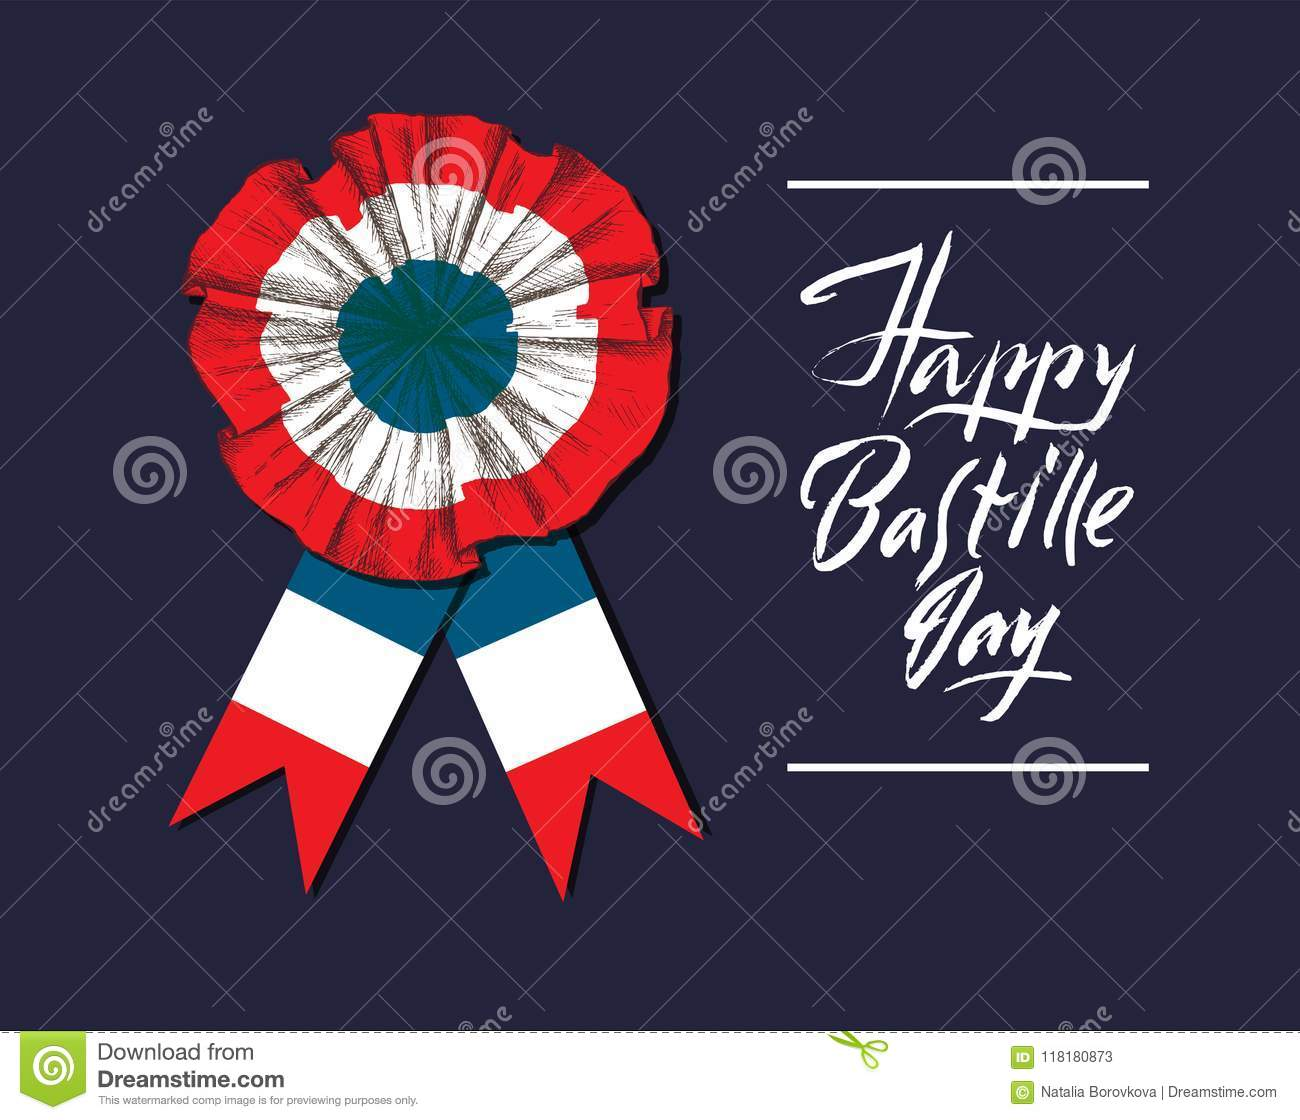 Bastille Day  Badge And Ribbon  The French Tricolor, The Colors Of